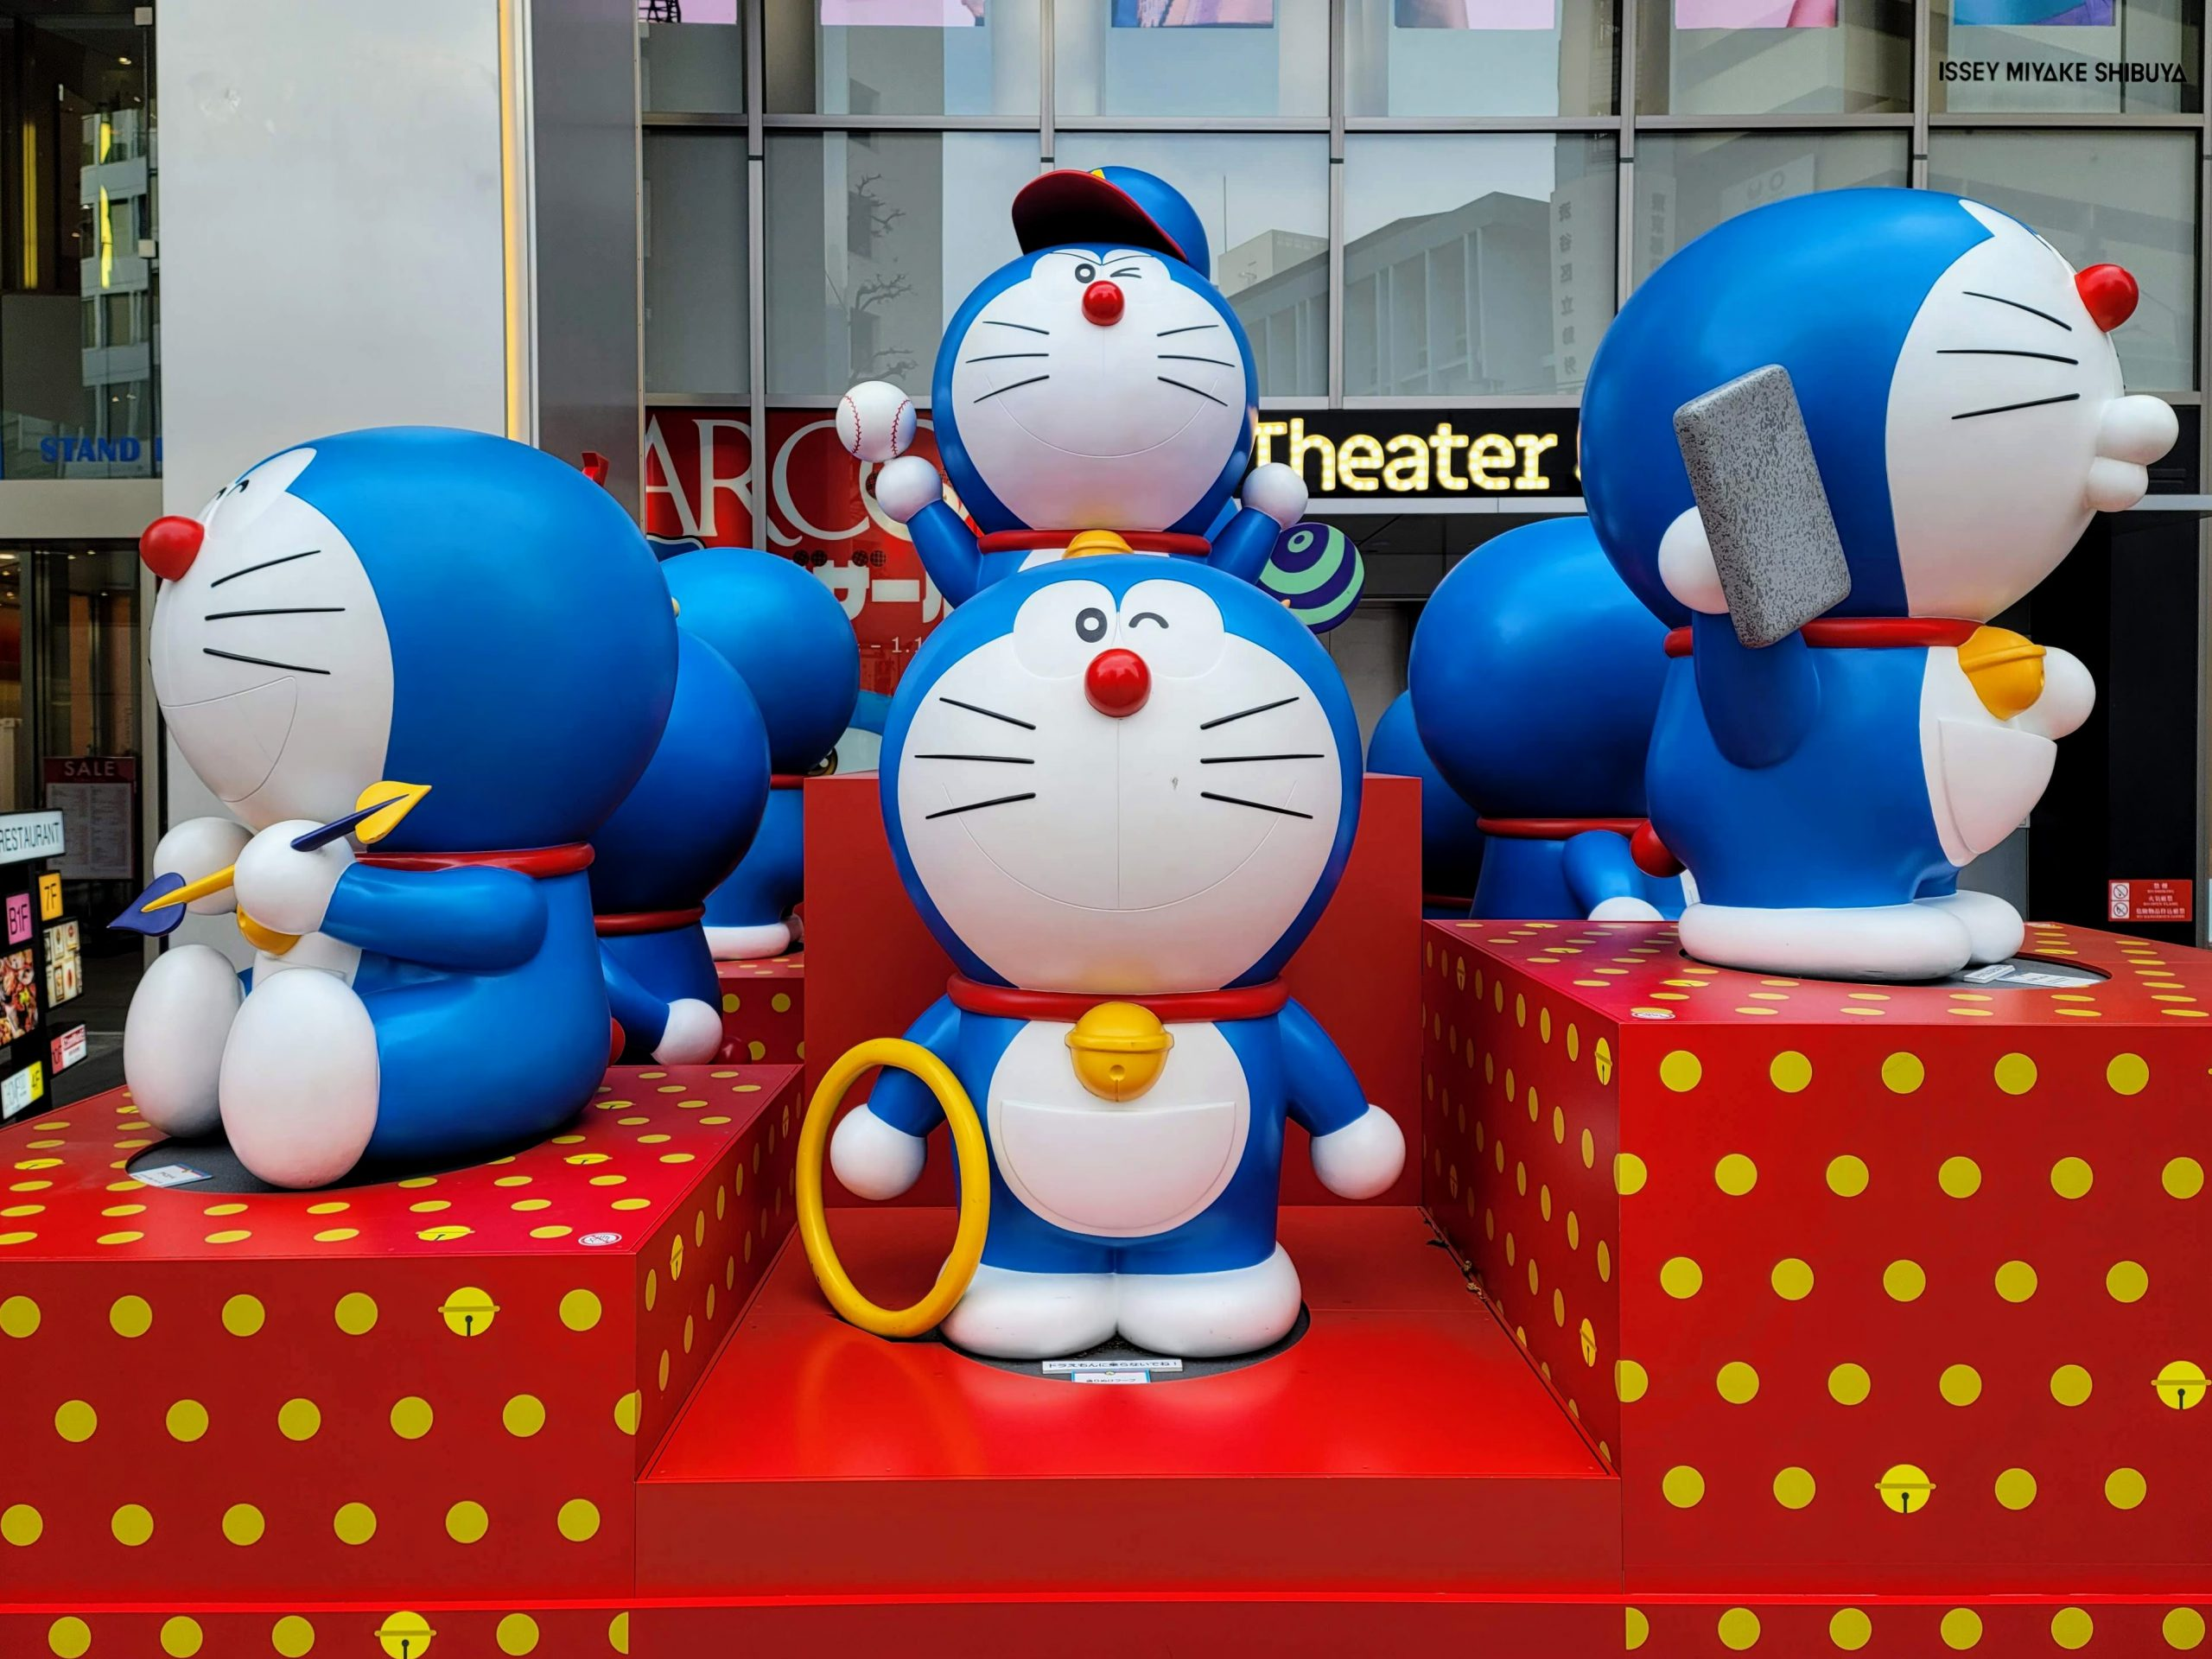 Doraemon at Parco Shibuya